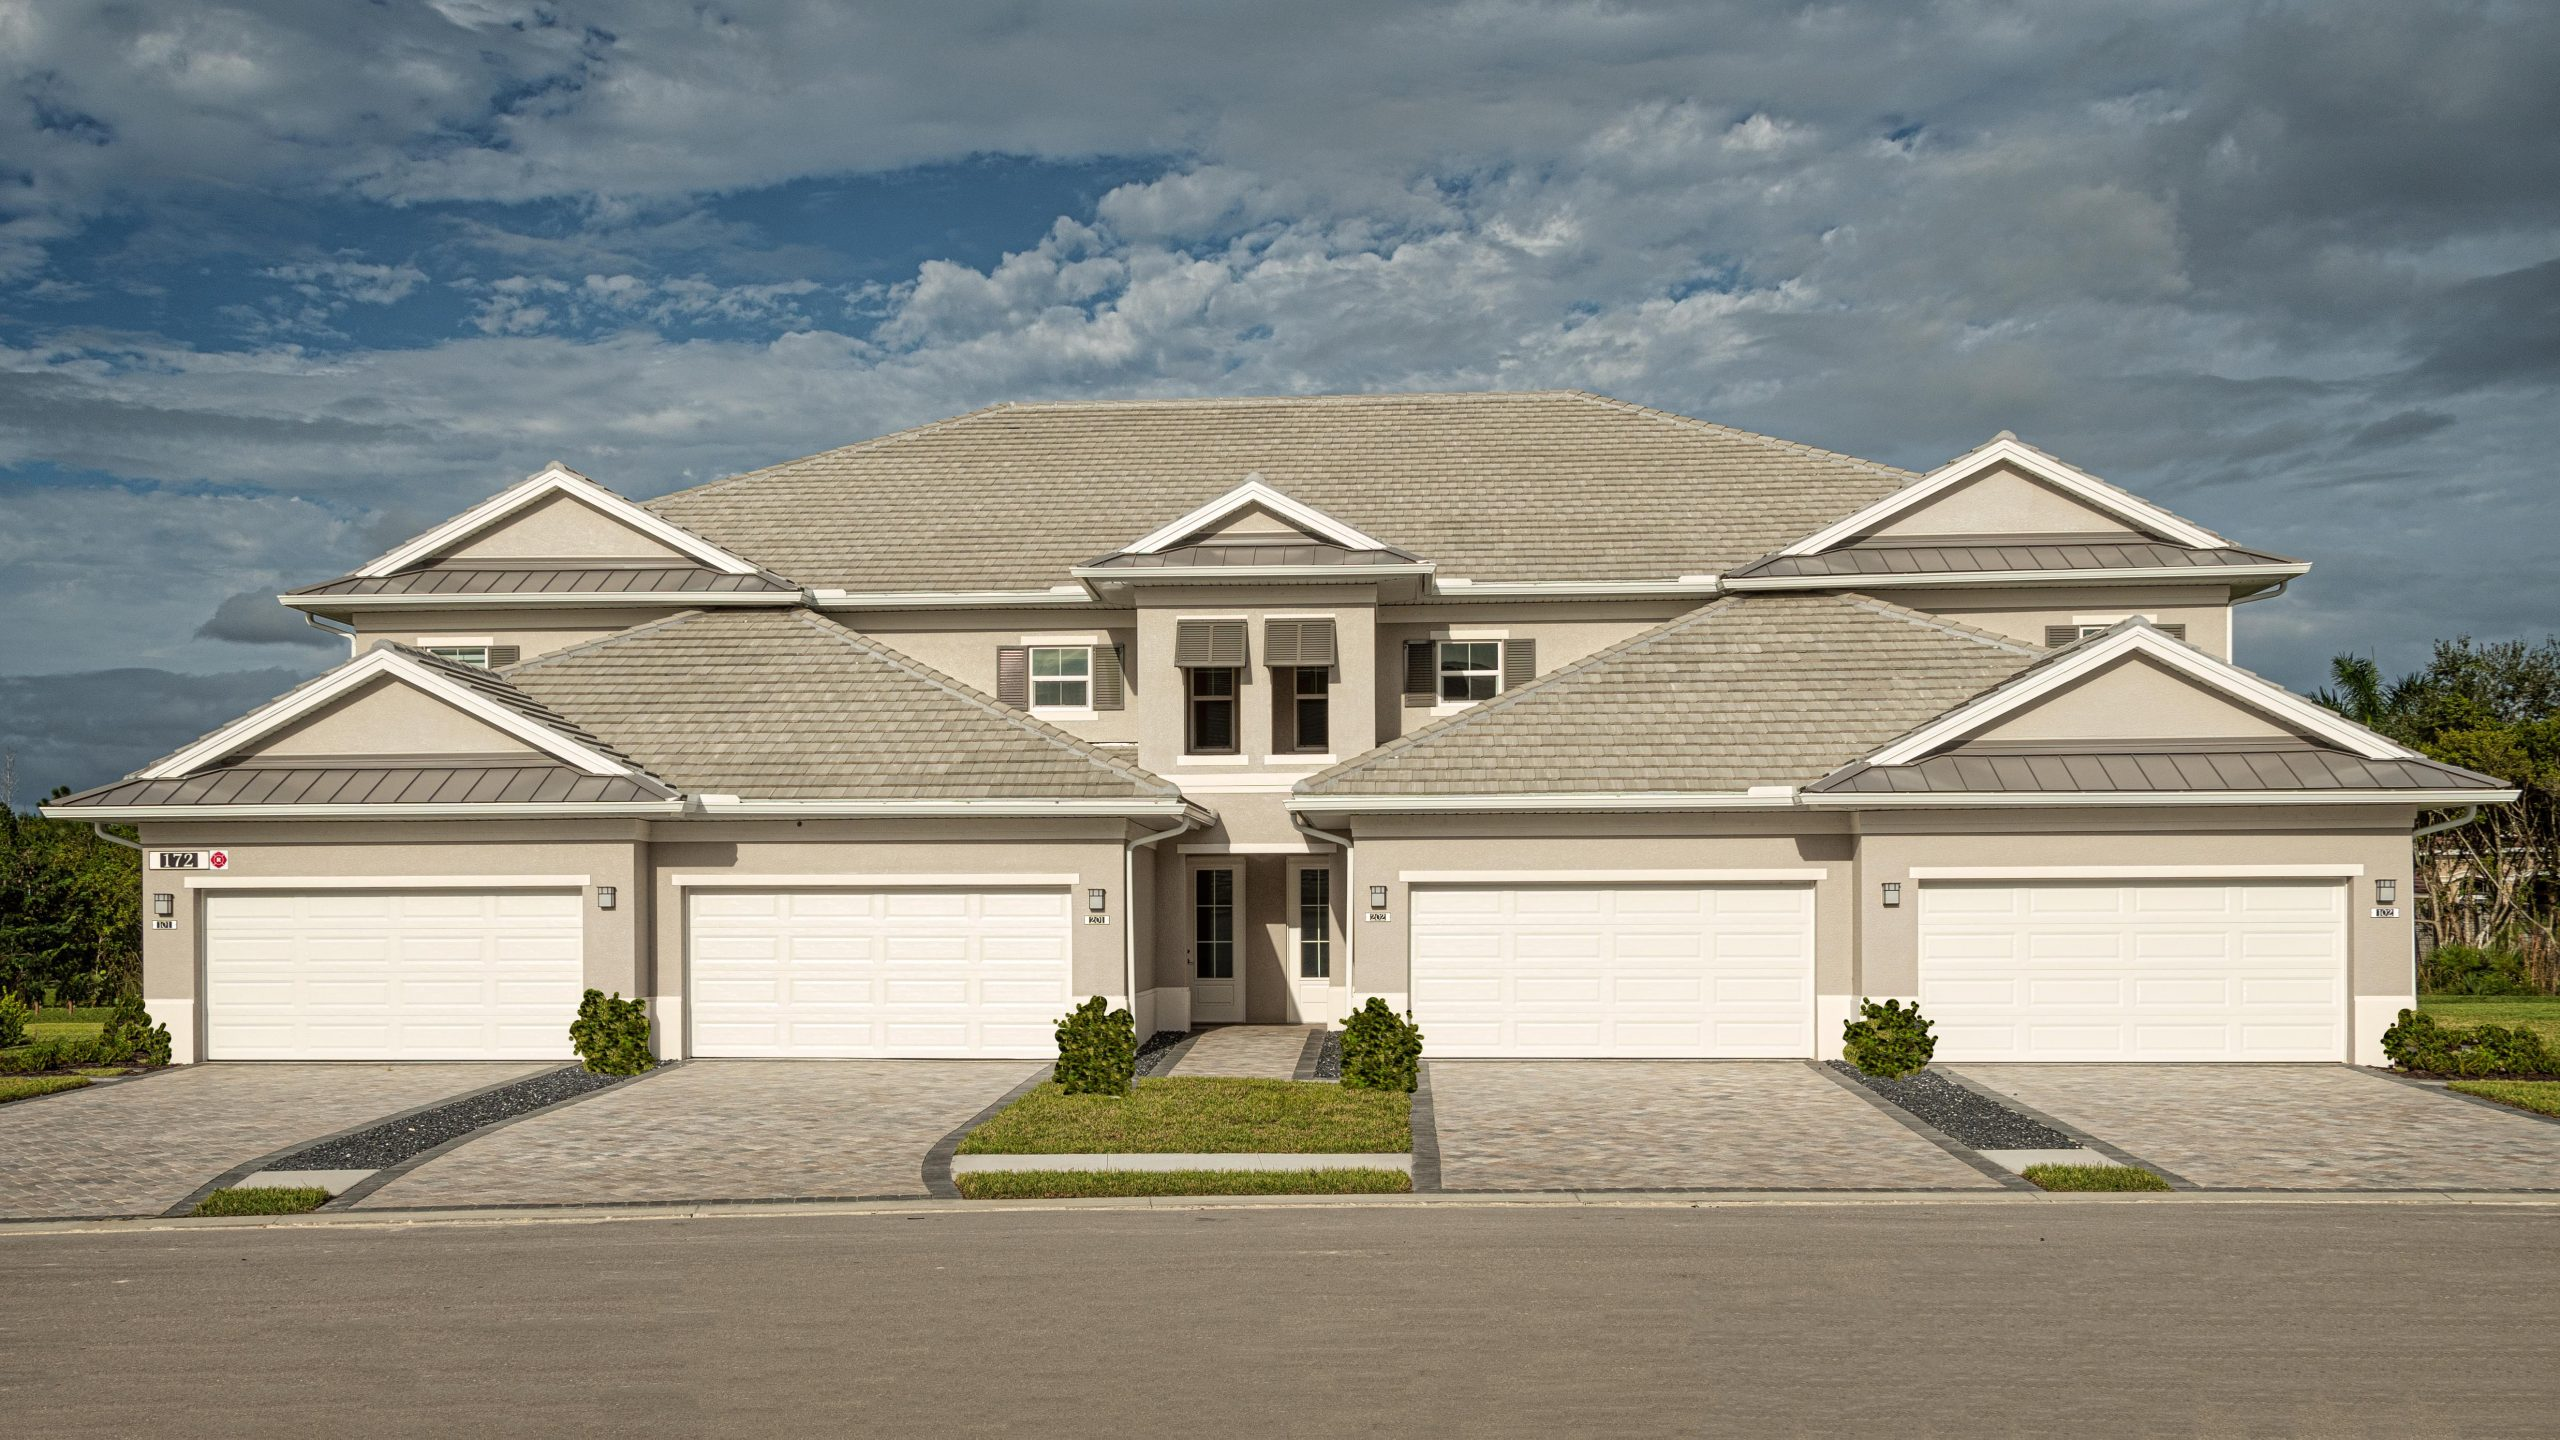 Grand Coach Homes Front View | Antilles of Naples, Florida - West Indies Styled Residential Resort